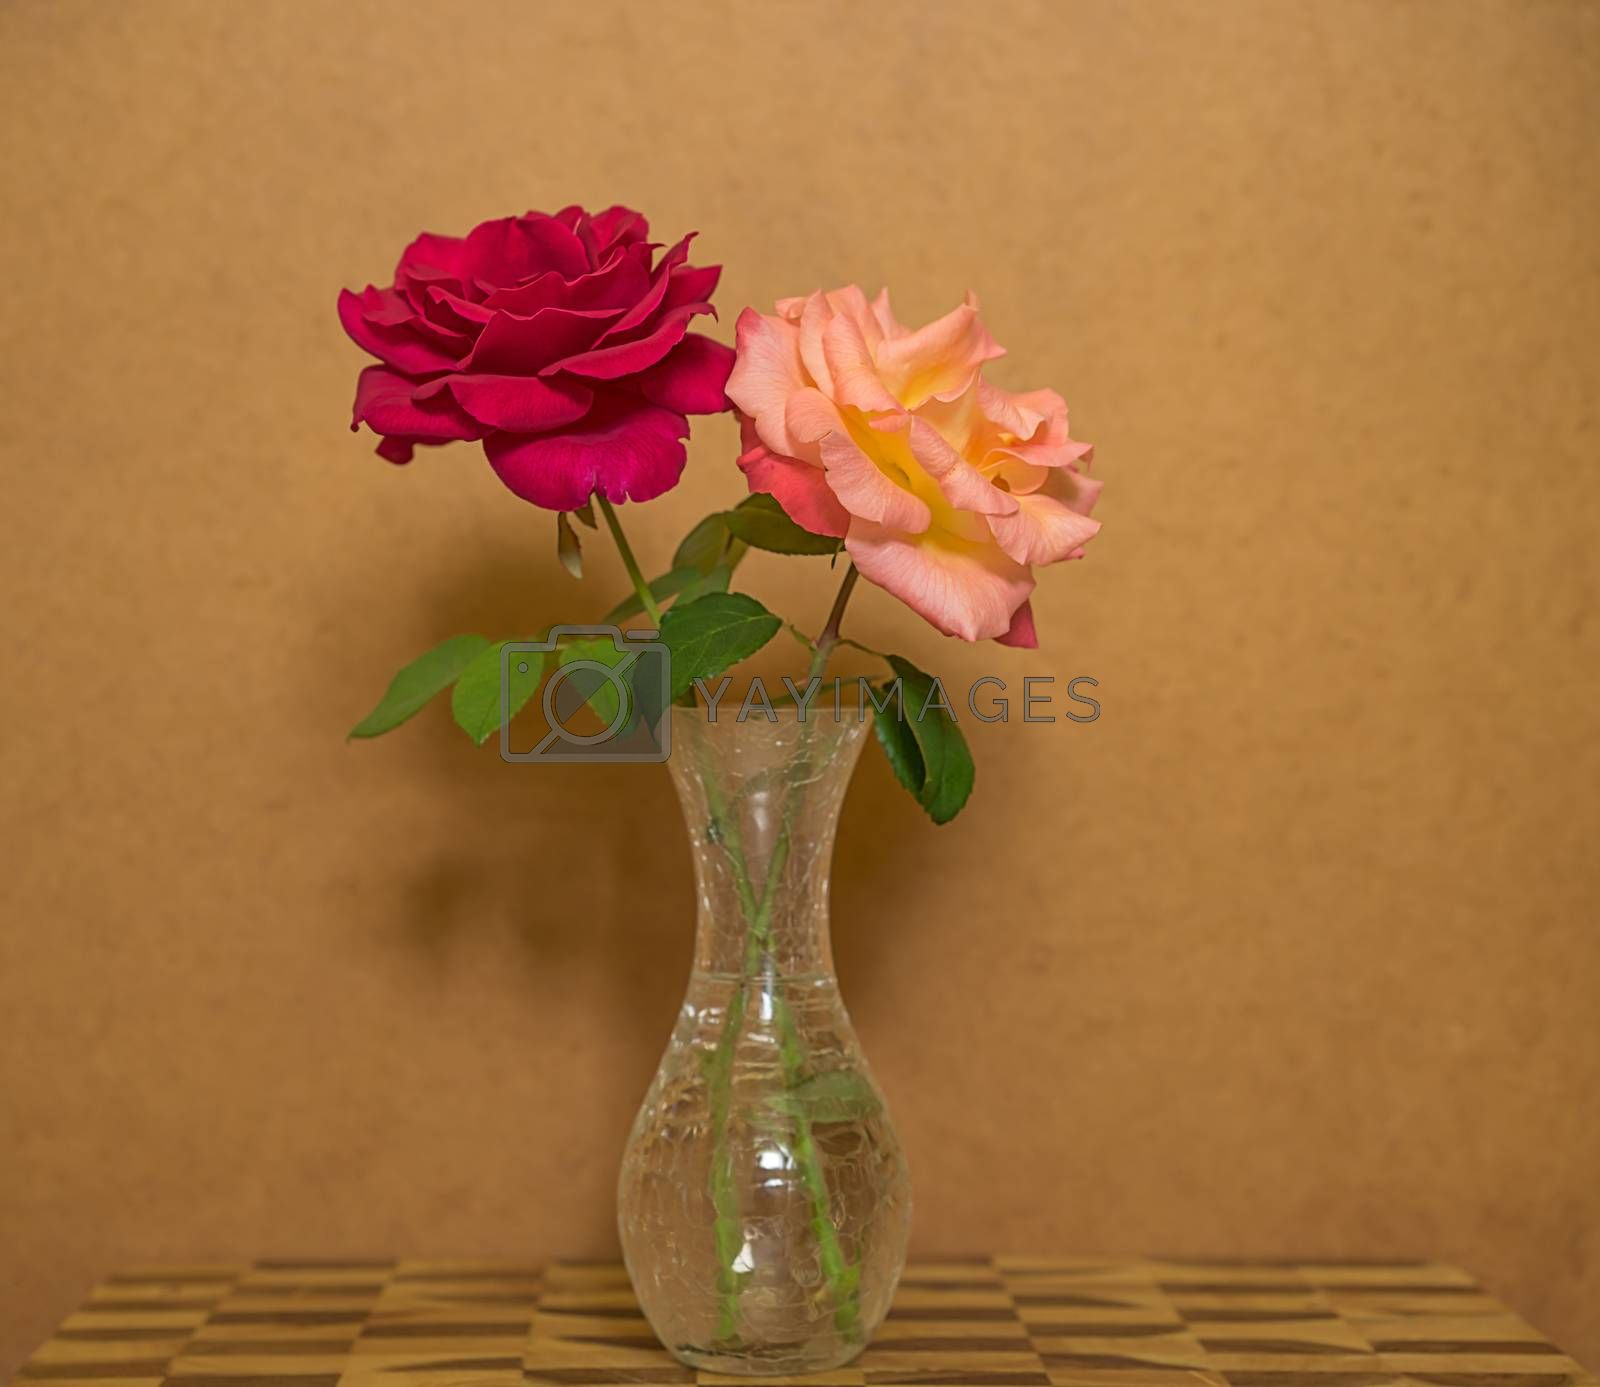 two rose flowers in a vase